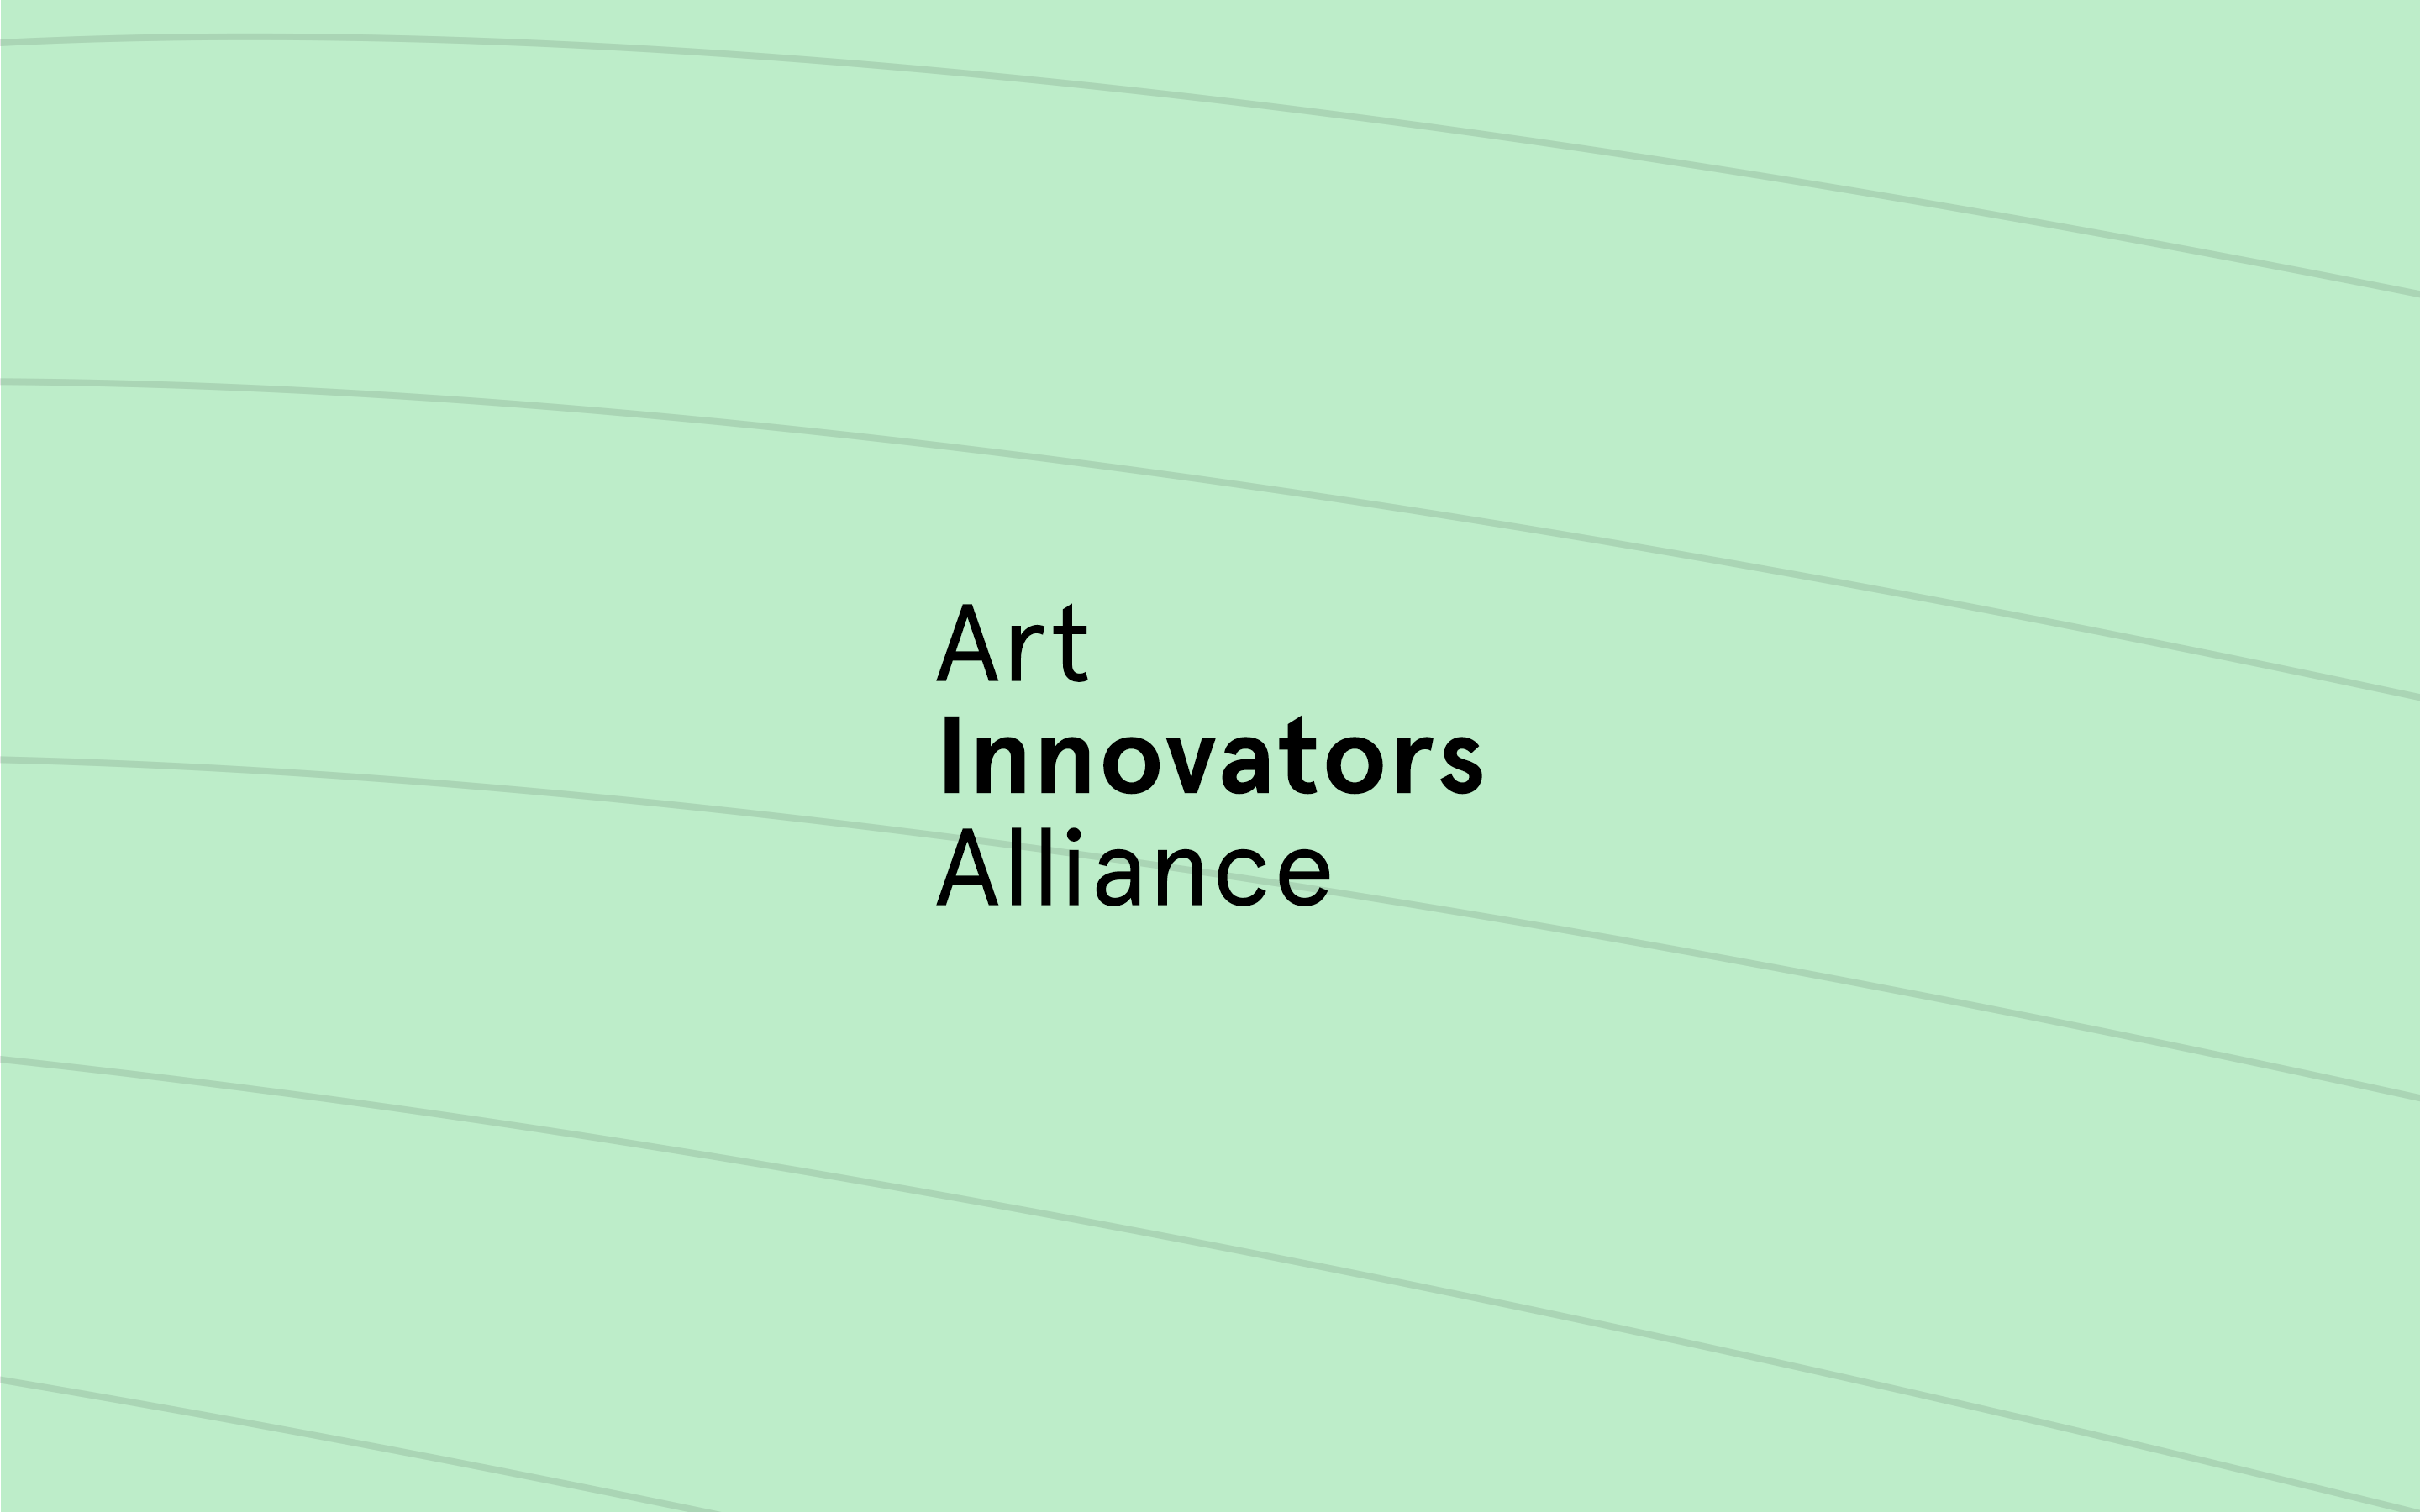 Art Innovators Alliance